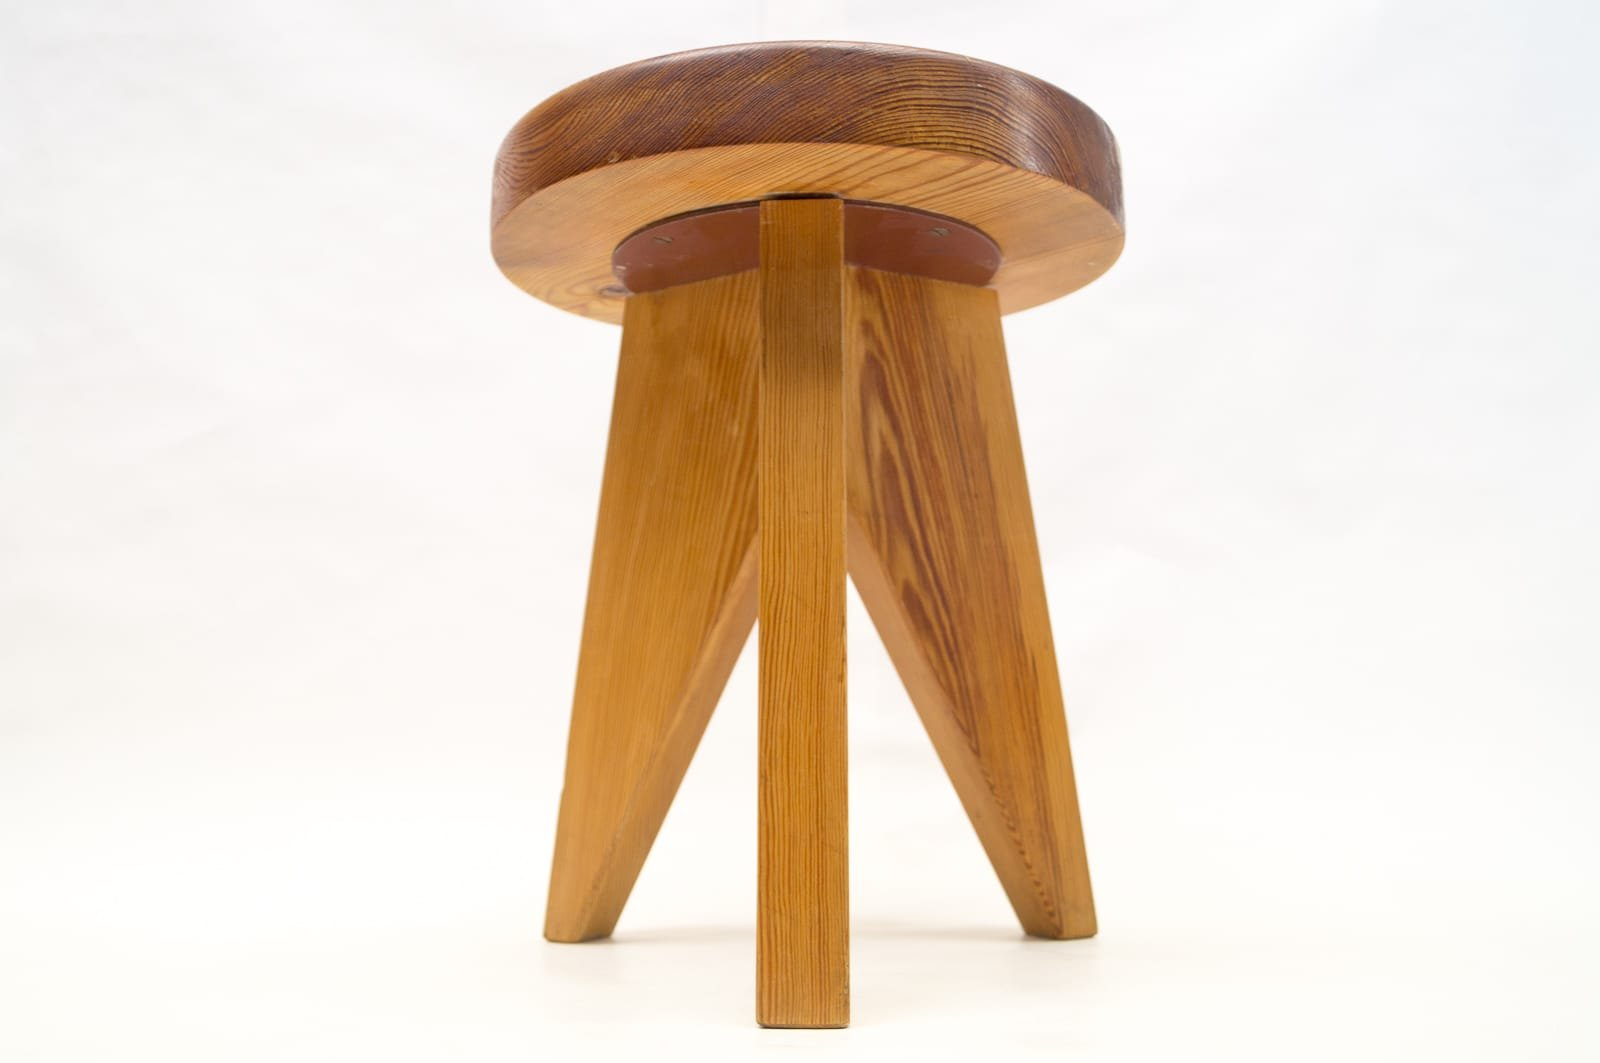 French Three-Legged Wooden Stool 1960s & French Three-Legged Wooden Stool 1960s for sale at Pamono islam-shia.org